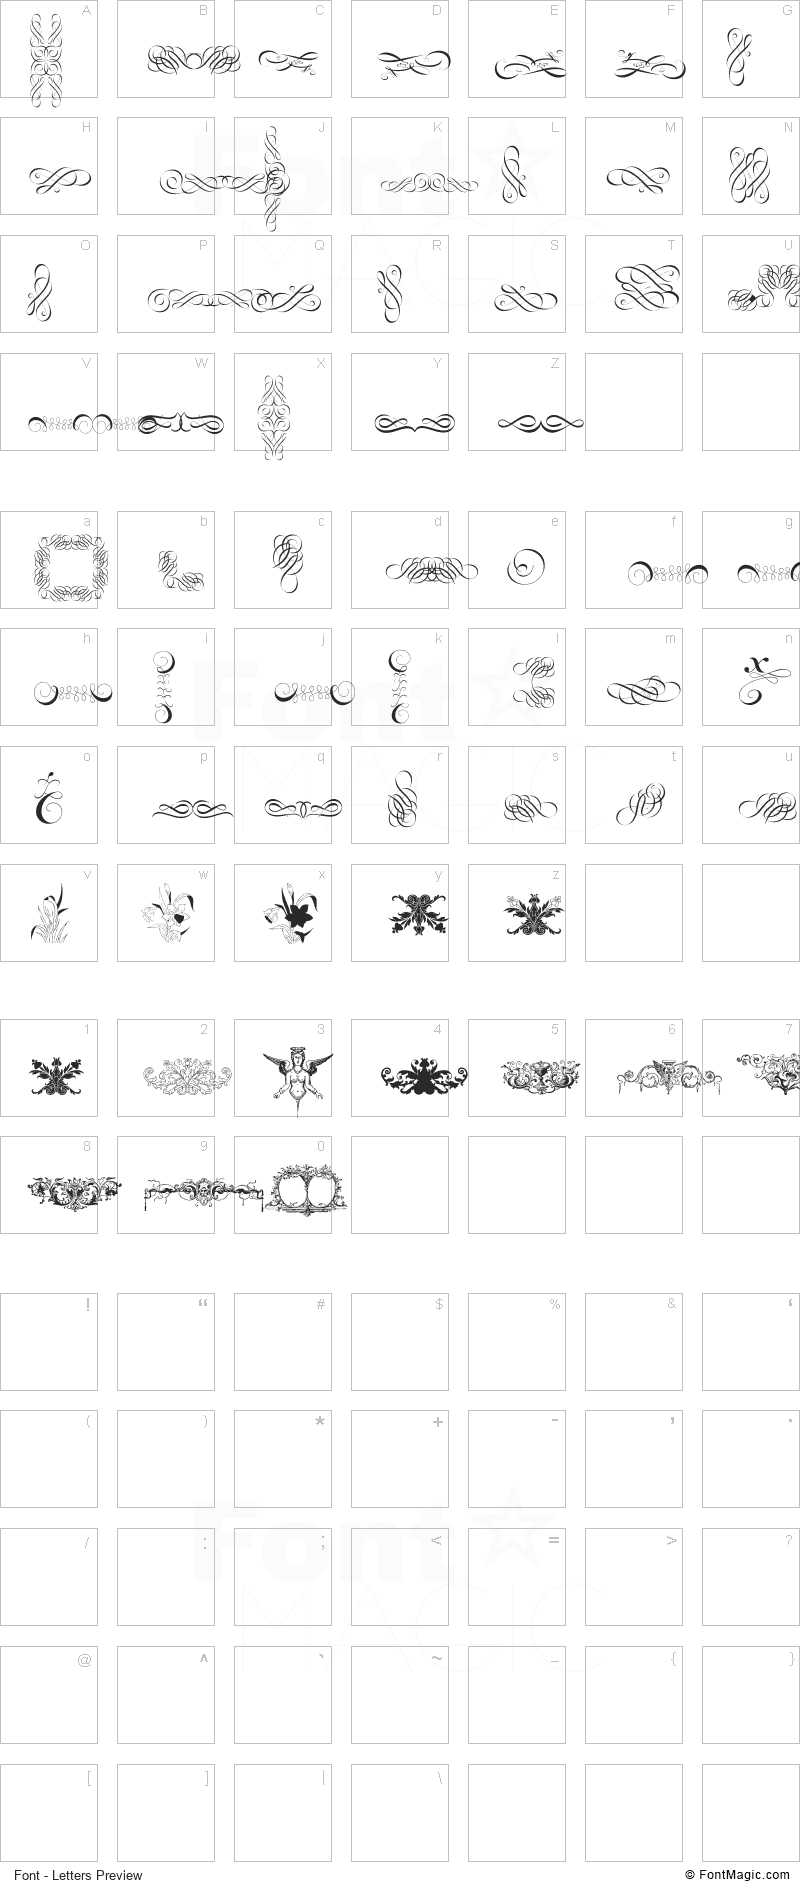 Cornucopia of Ornaments Font - All Latters Preview Chart